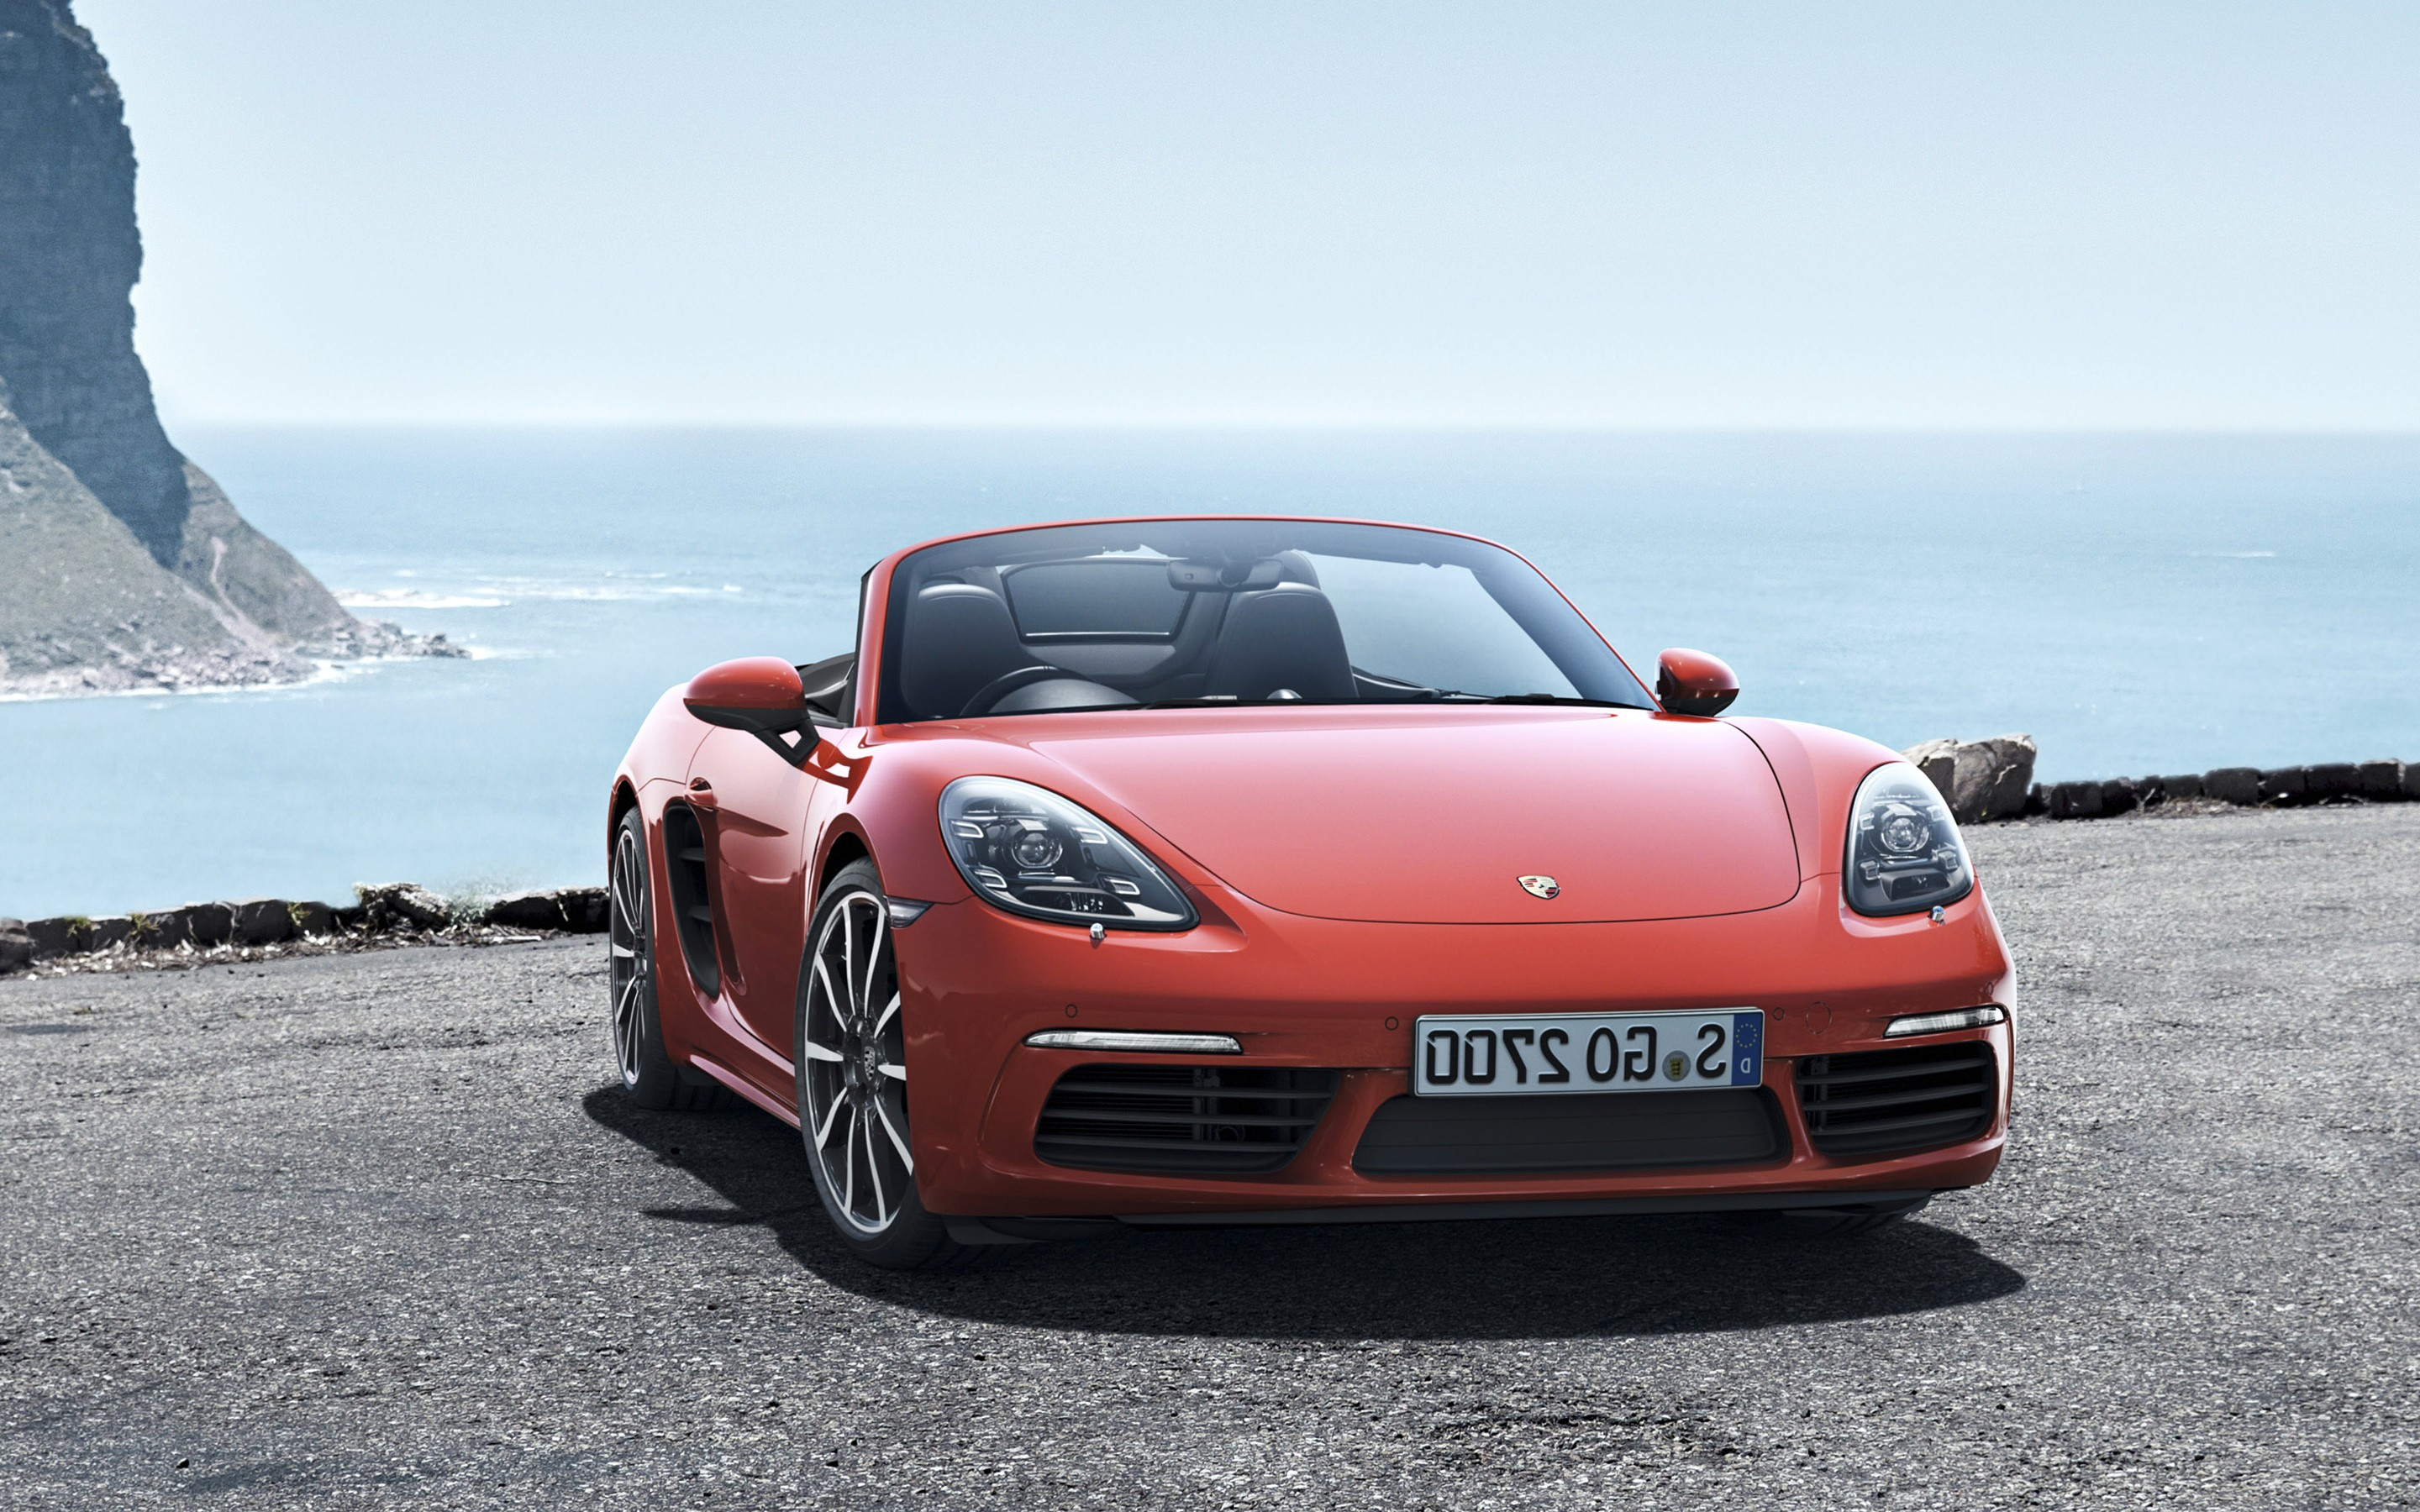 Porsche 718 Boxster Hd Cars 4k Wallpapers Images Backgrounds Photos And Pictures